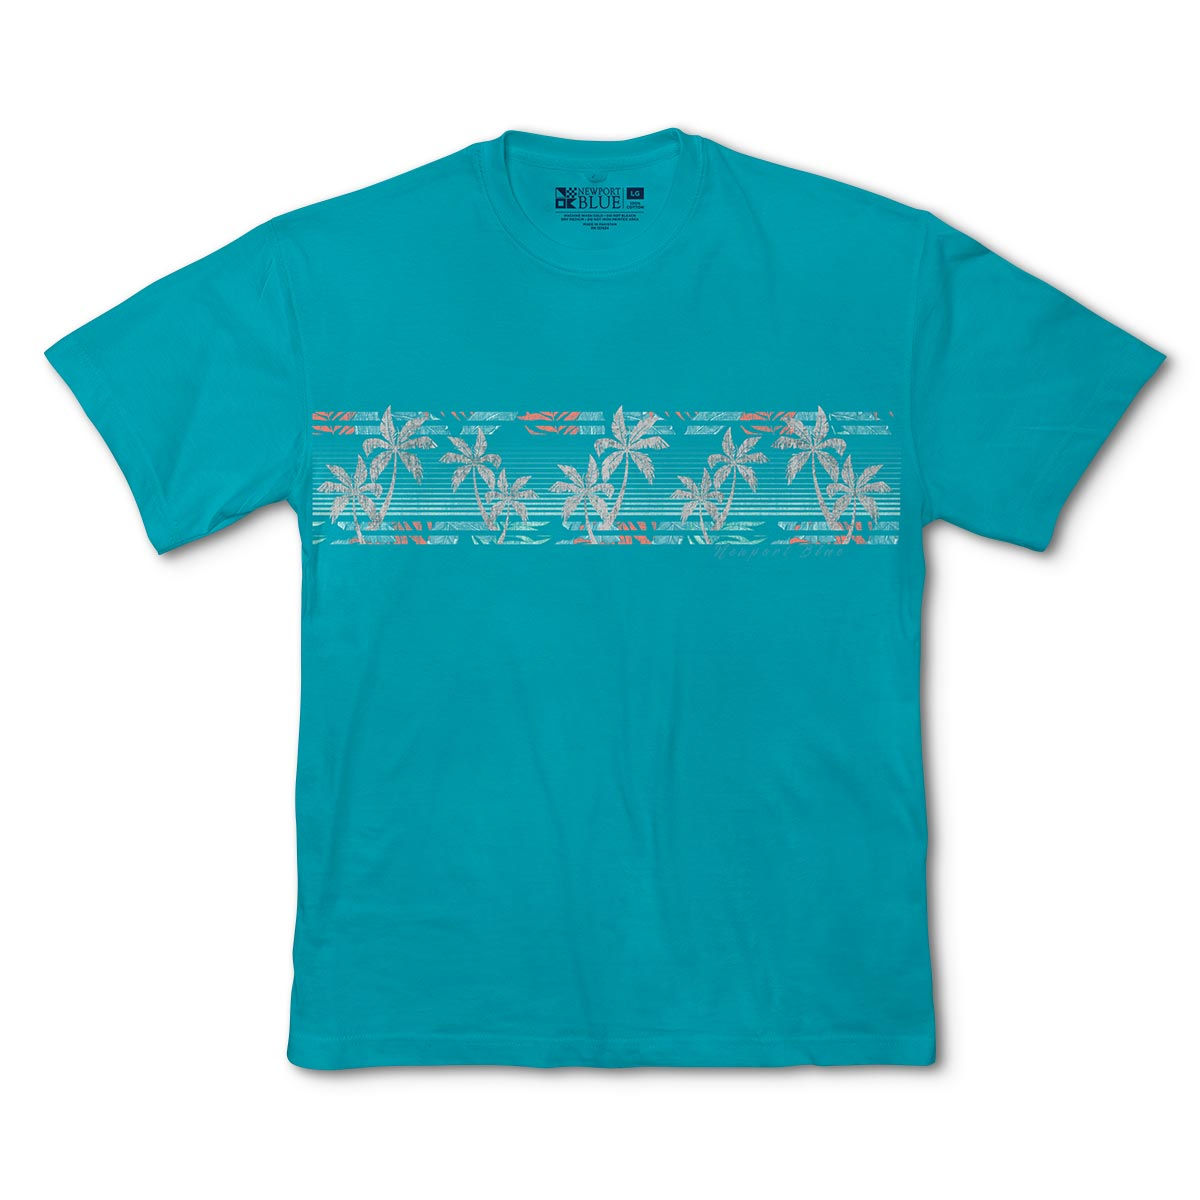 Newport Blue - Graphic Tee | Palm Woods - Jade